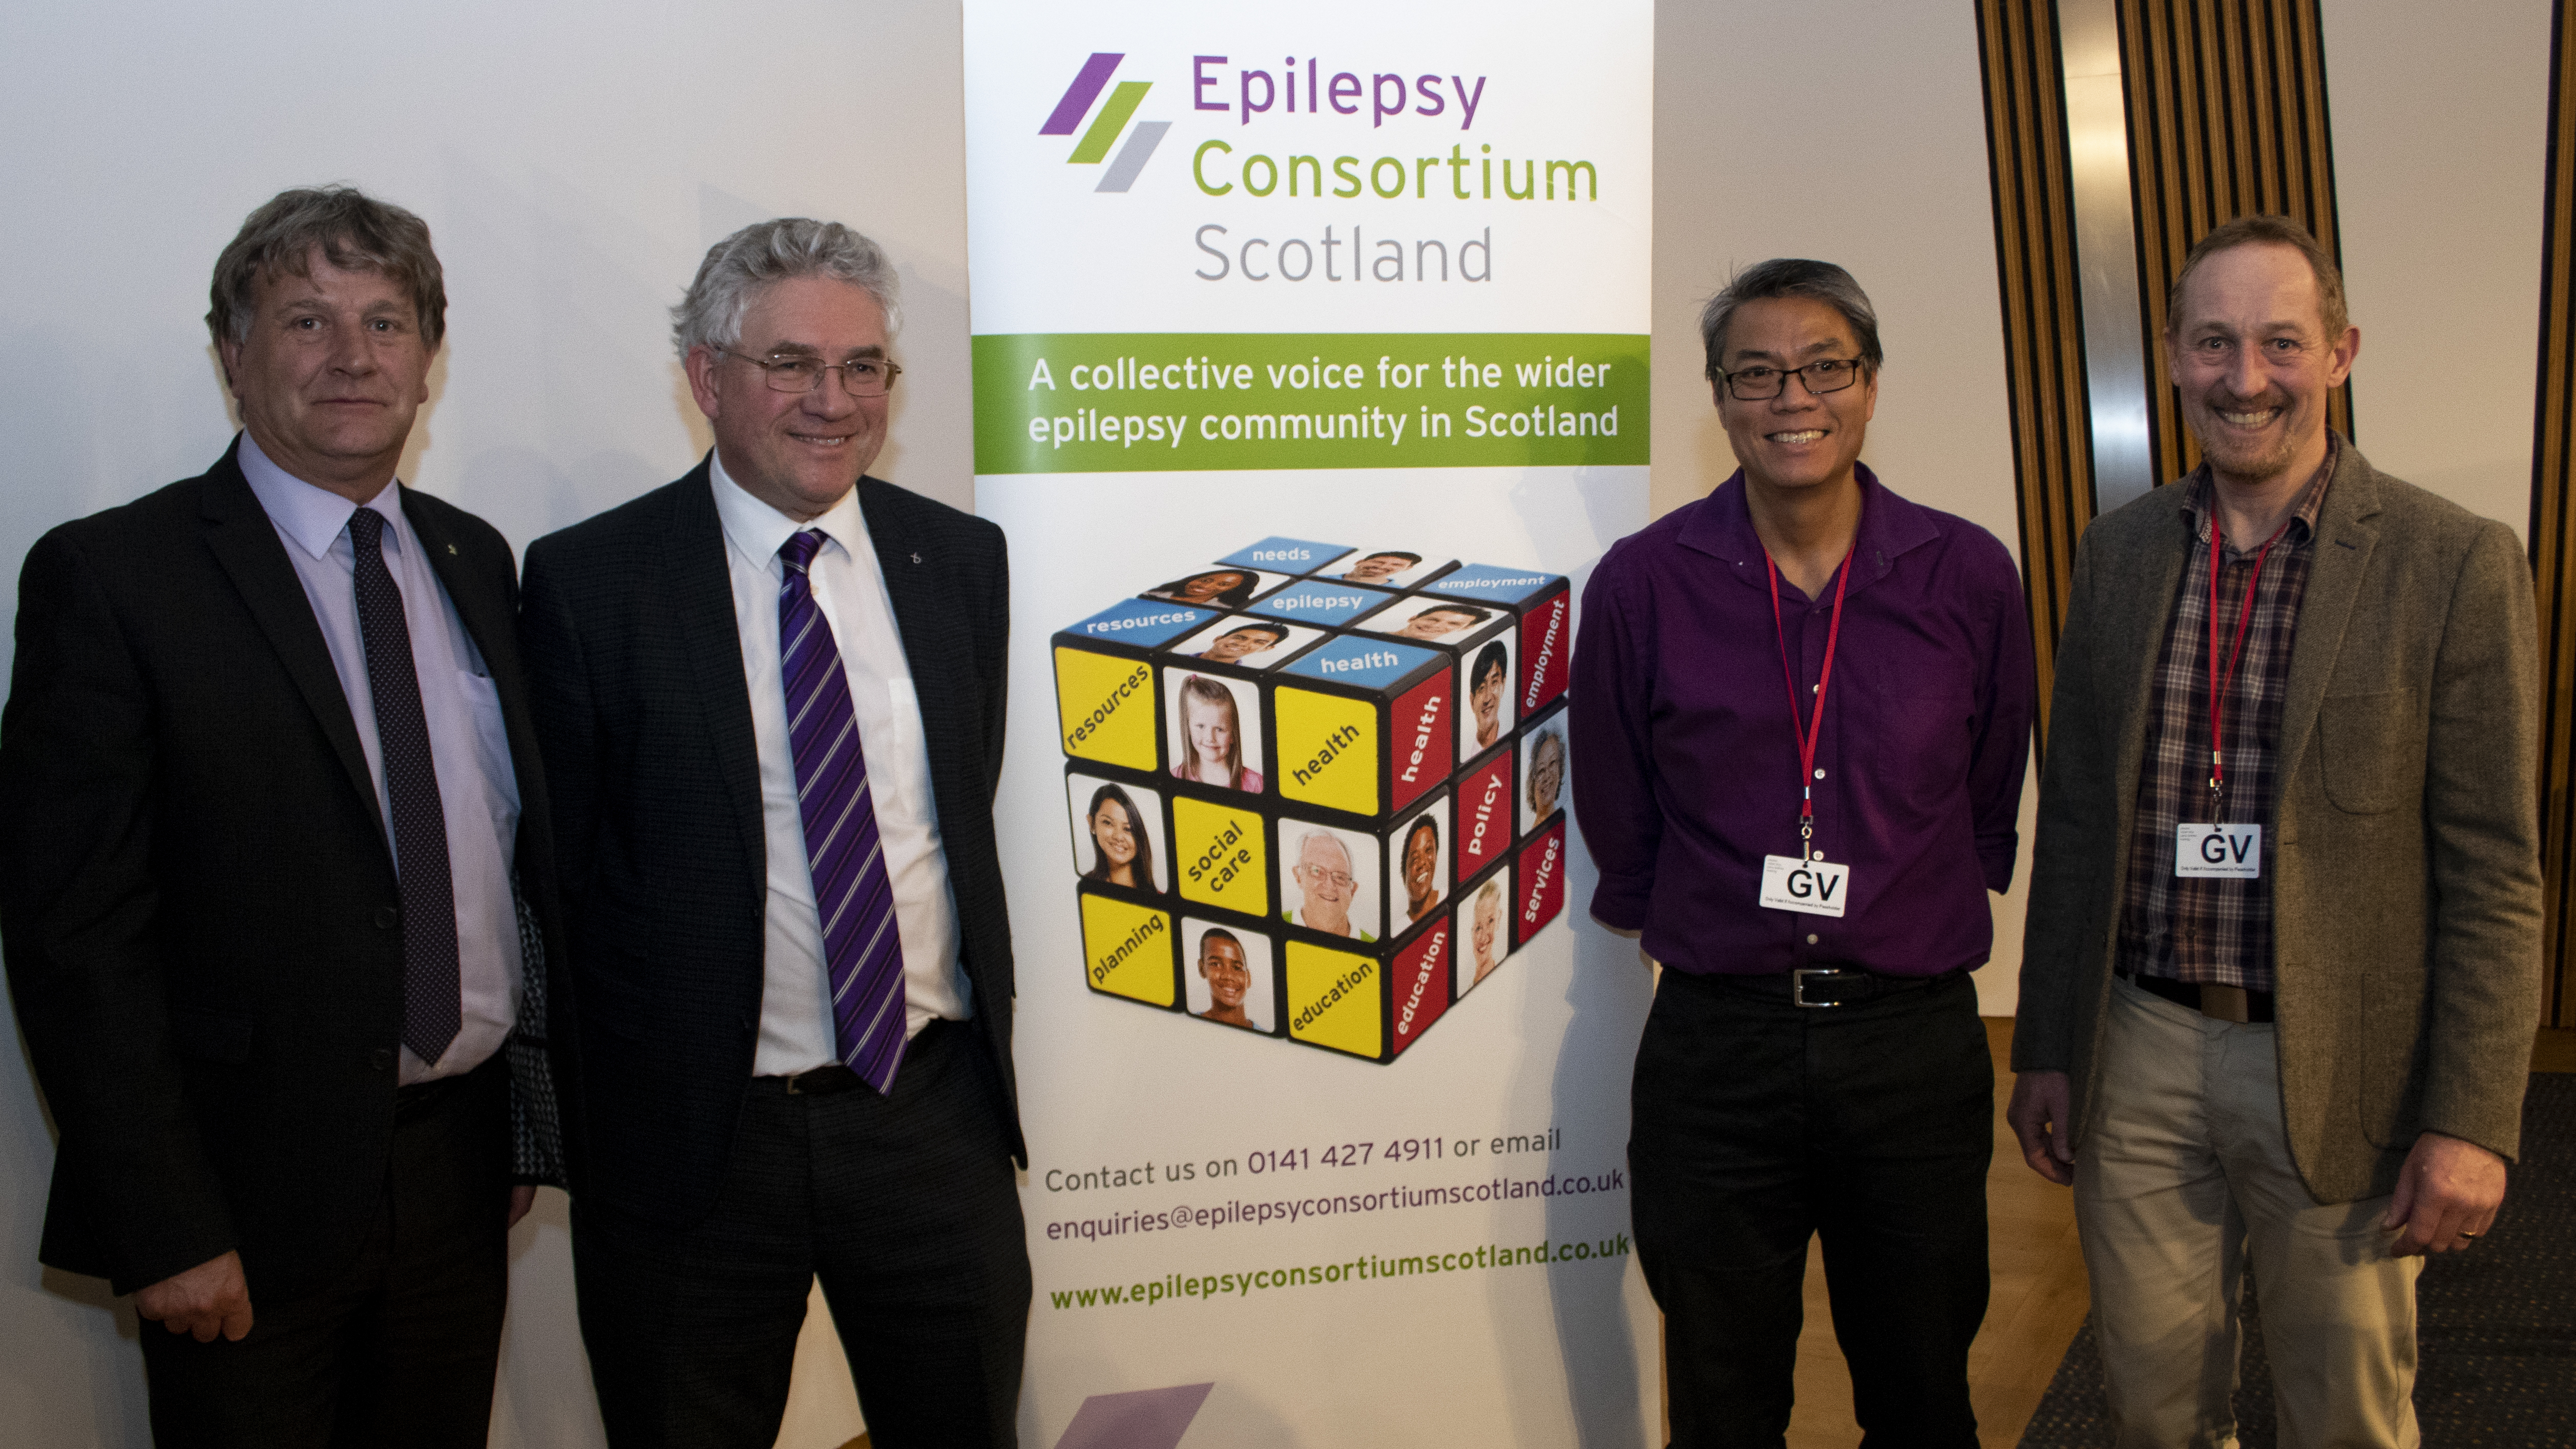 Pictured Left to Right: David Torrance (MSP) Kenneth Gibson (MSP), Dr Richard Chin (Director of the Muir Maxwell Centre, Consultant Paediatric Neurologist, and Senior Clinical Lecturer in paediatric neurosciences at Edinburgh University) Sam Whitmore (Chair, Epilepsy Consortium Scotland)